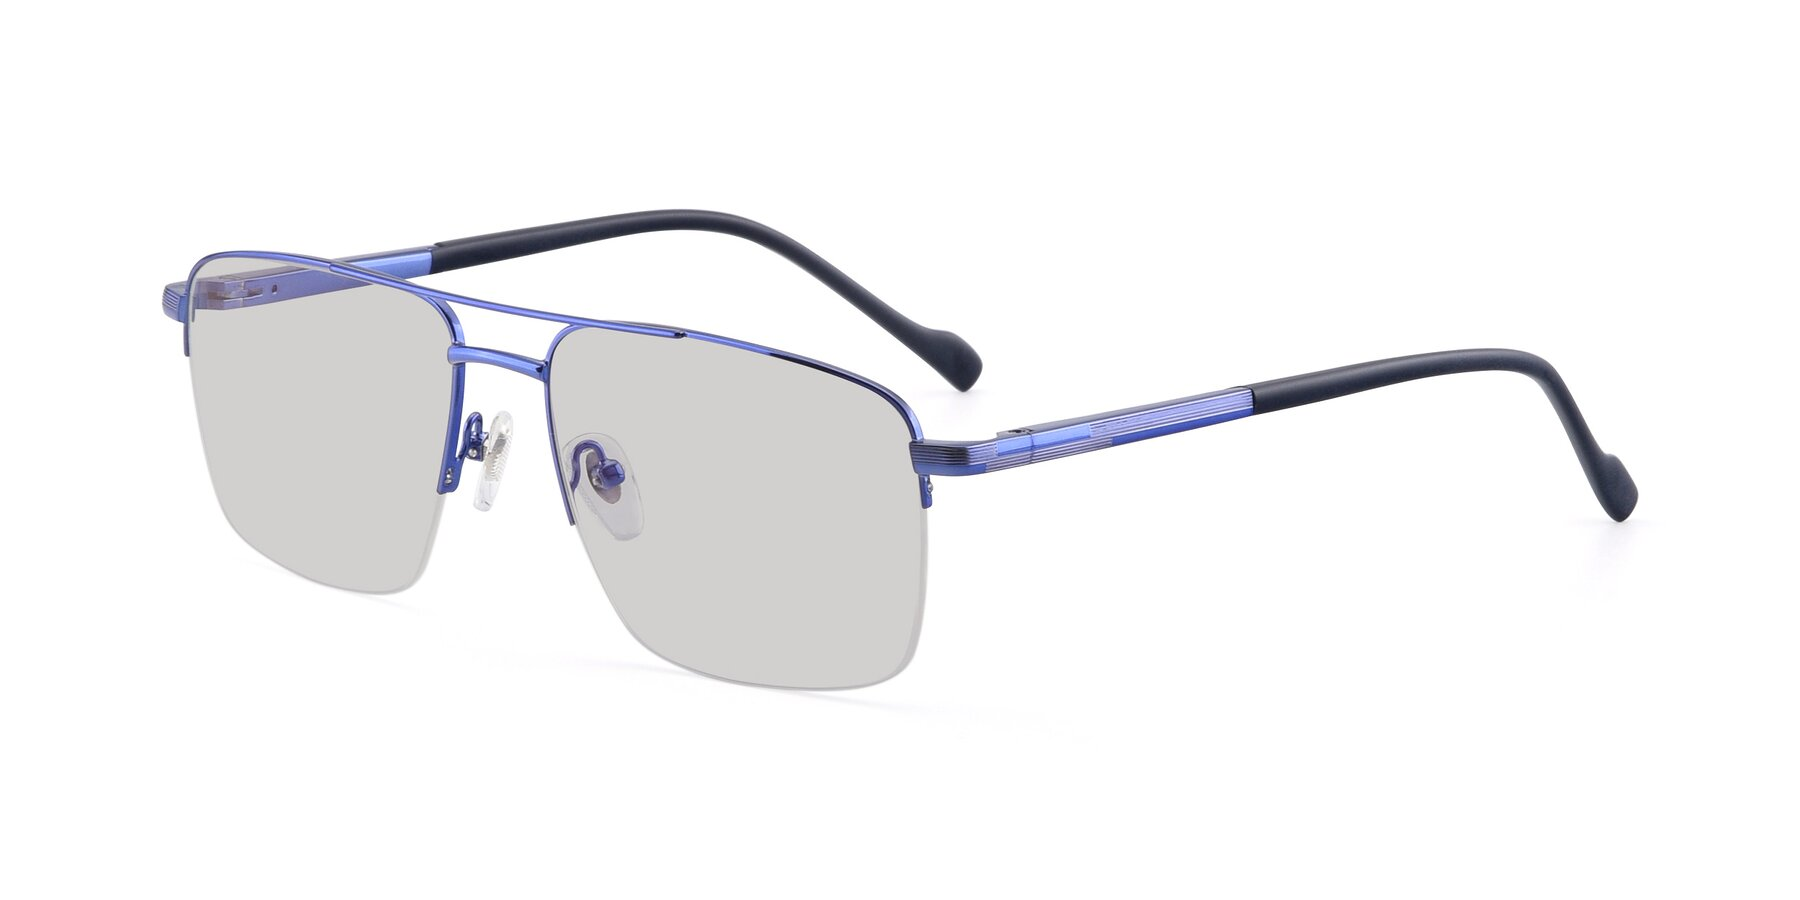 Angle of 19013 in Blue with Light Gray Tinted Lenses